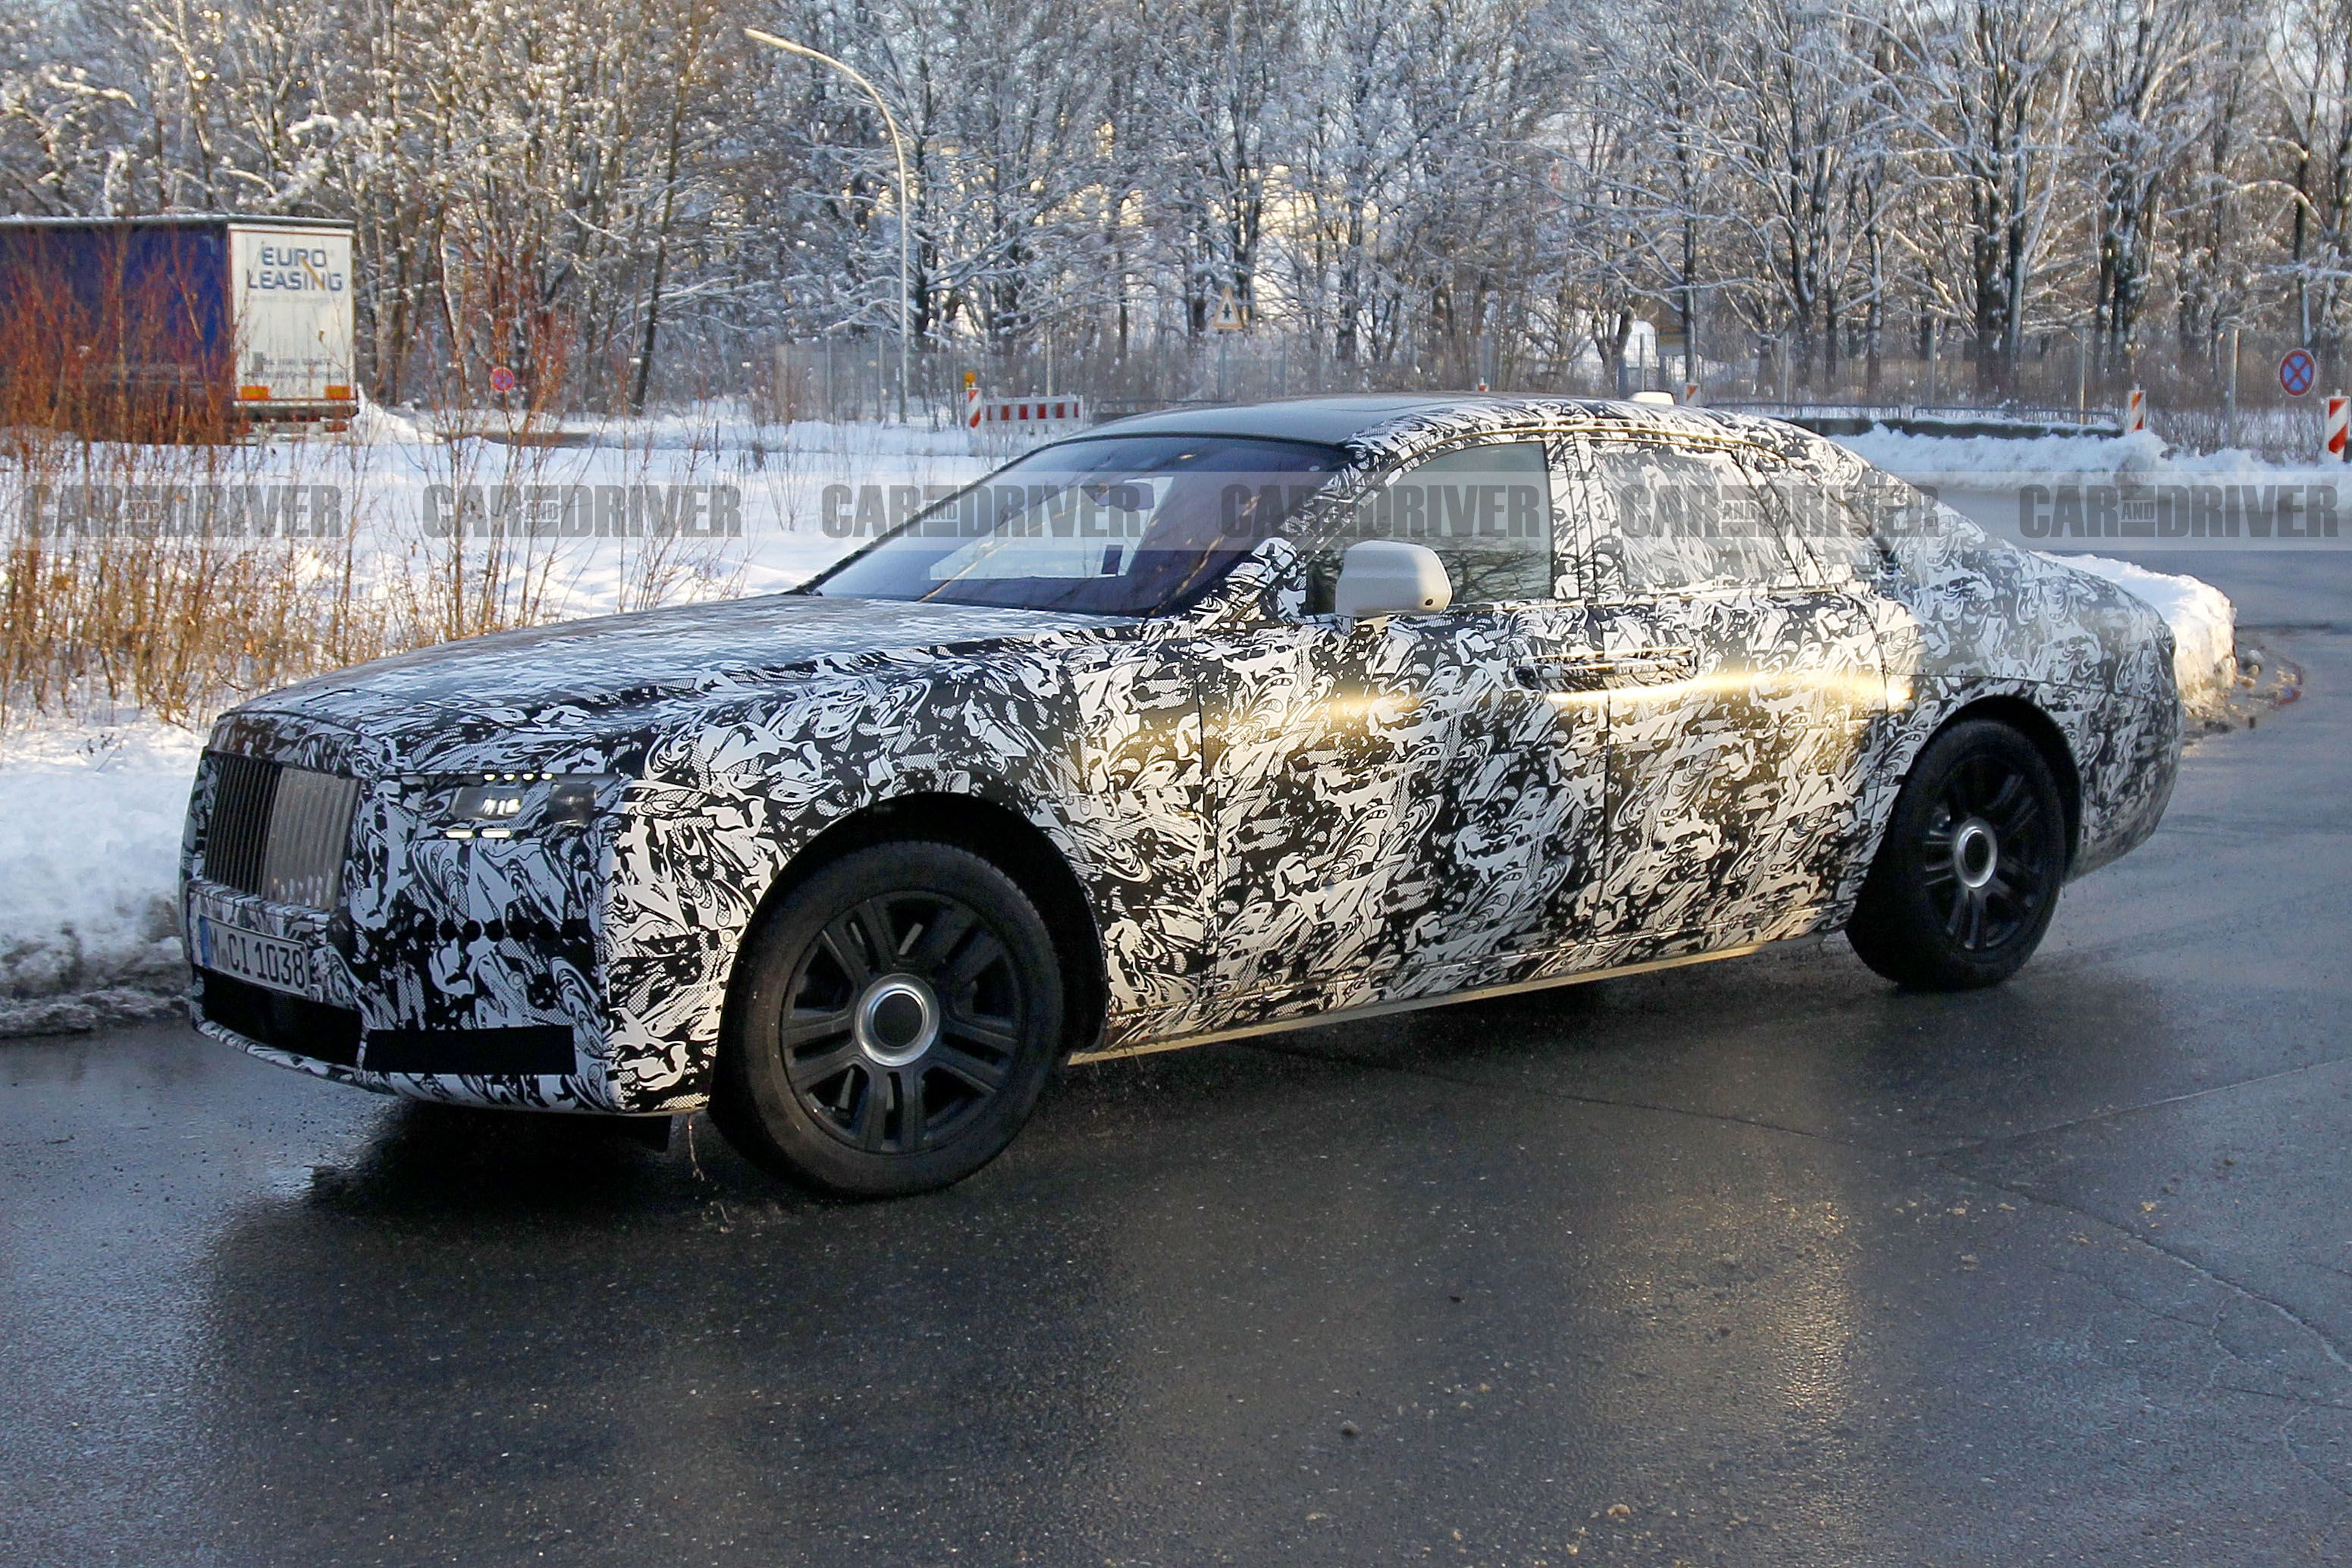 The 2020 Rolls-Royce Ghost Will No Longer Be Just a BMW in Luxury Clothing